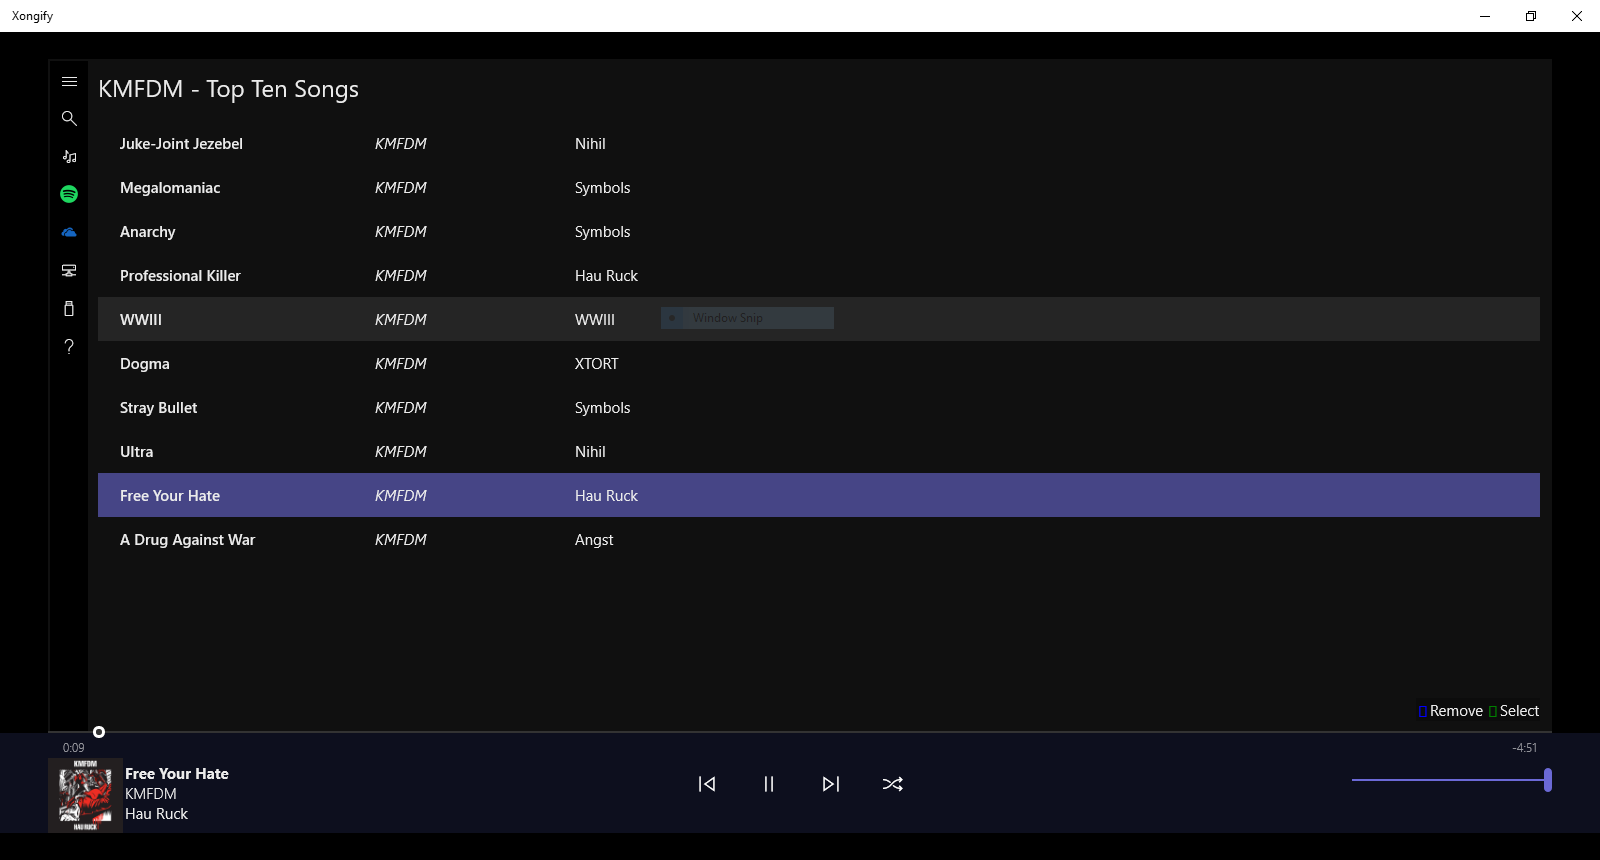 how to download spotify songs for free